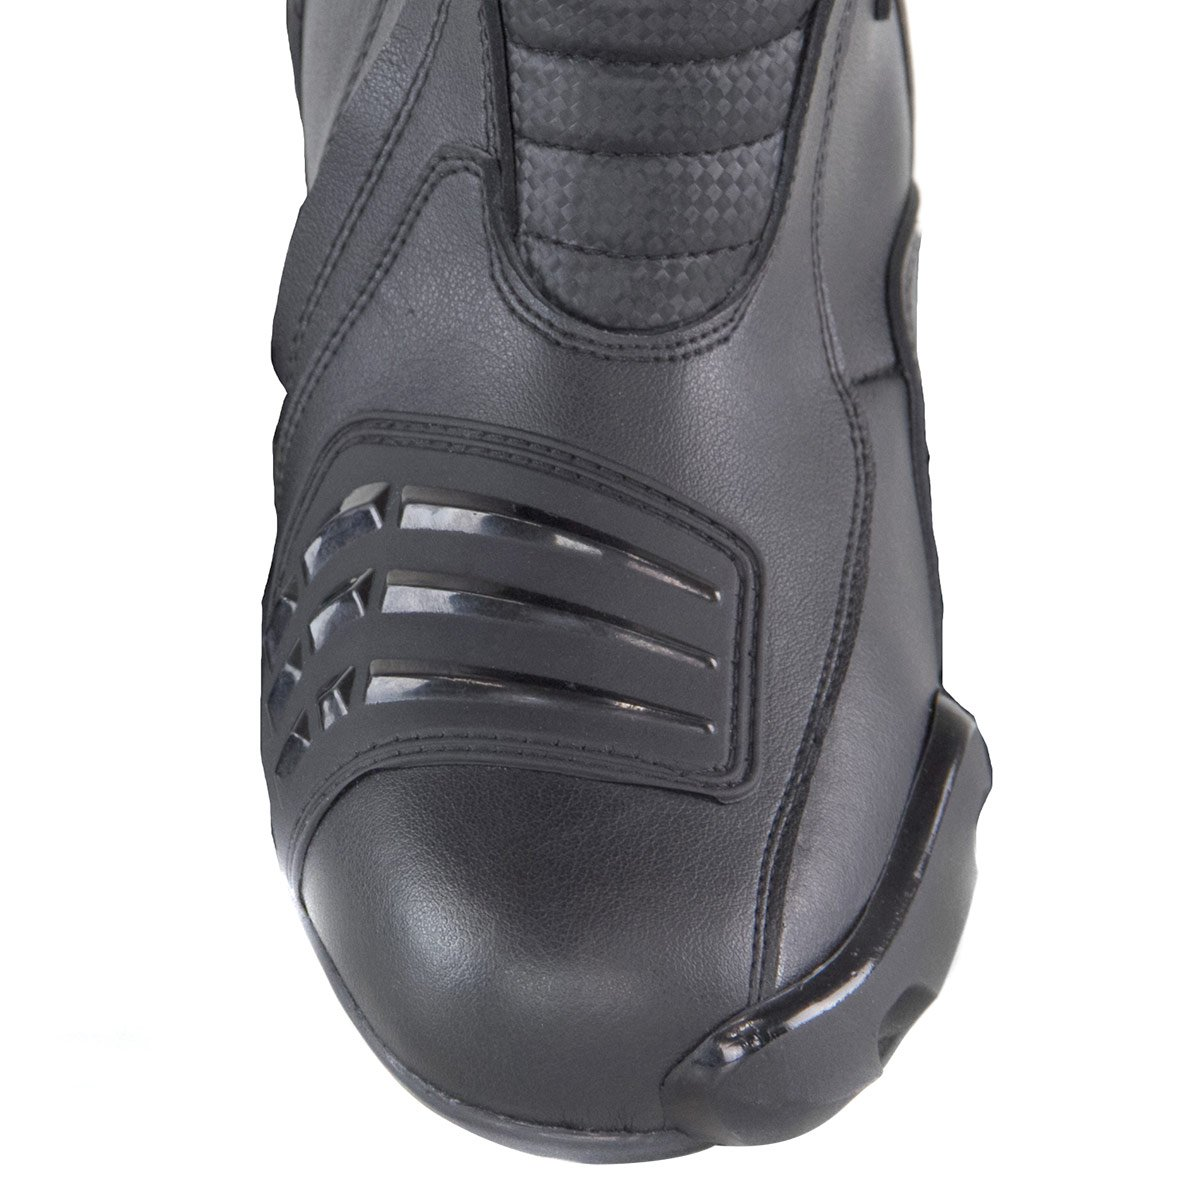 Vulcan V300 Mens Velocity Motorcycle Sport Boots - 11 by Vulcan (Image #4)